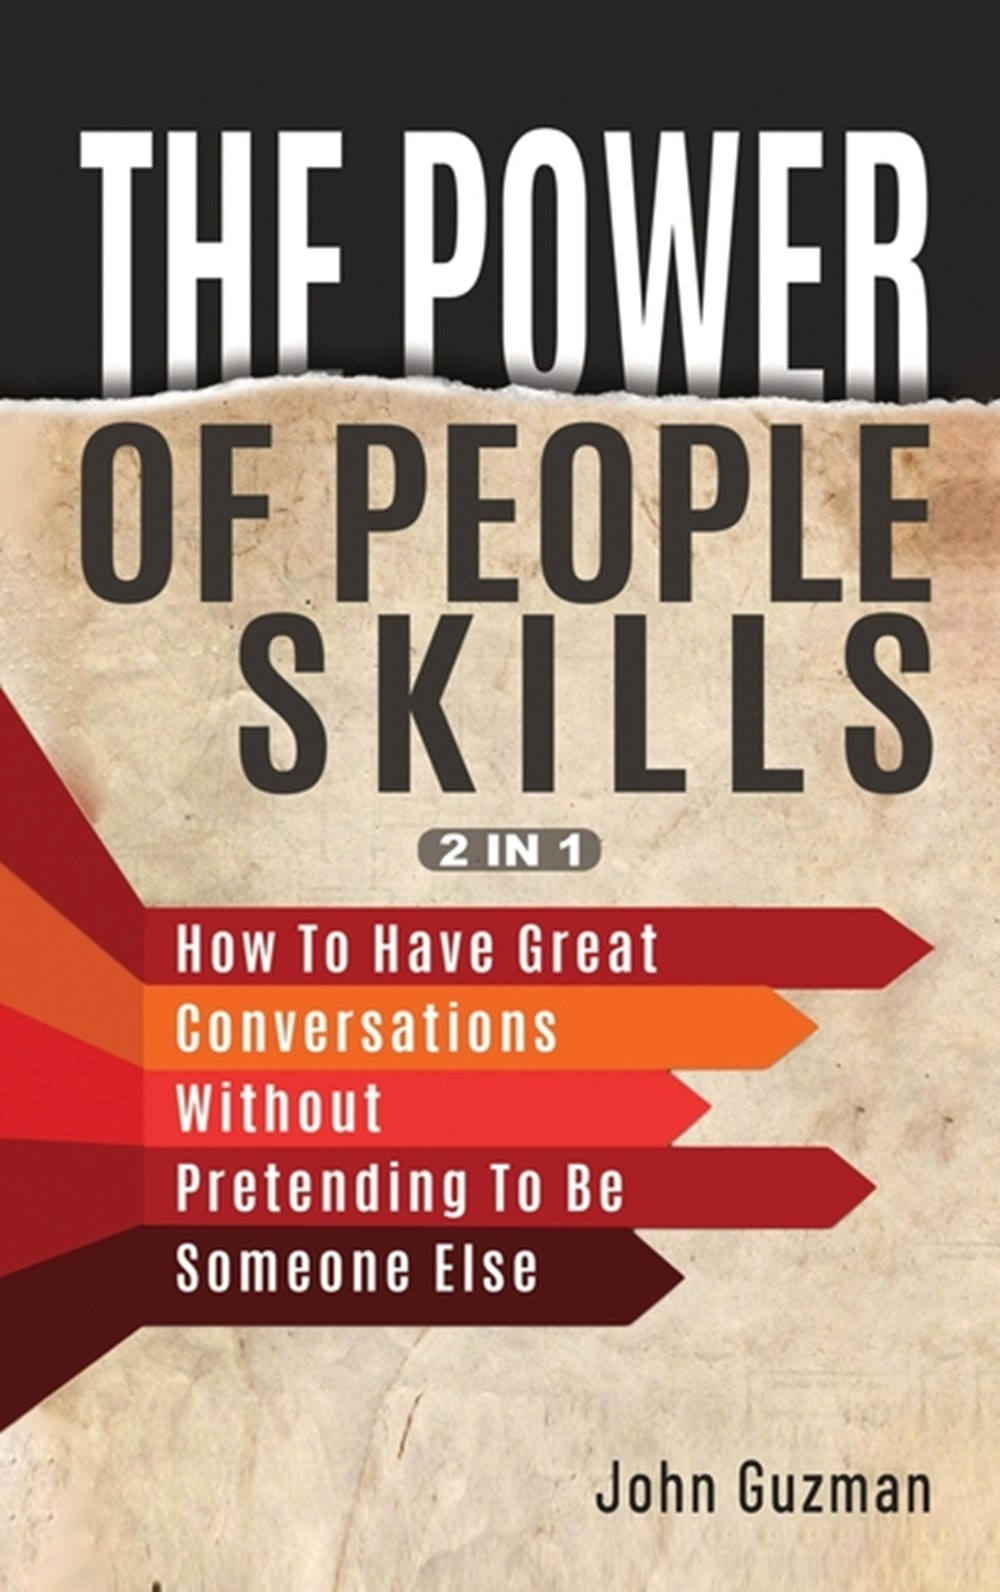 Power Of People Skills 2 In 1 How To Have Great Conversations Without Pretending To Be Someone Else